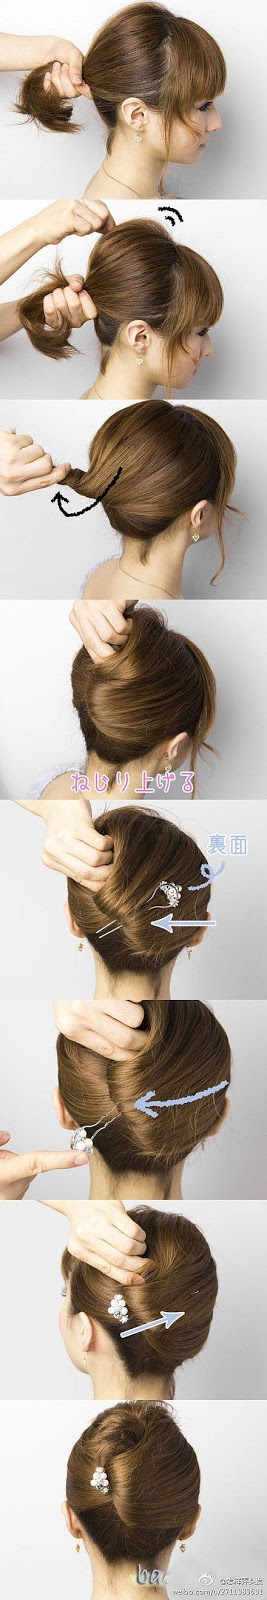 #6 updo for short hair